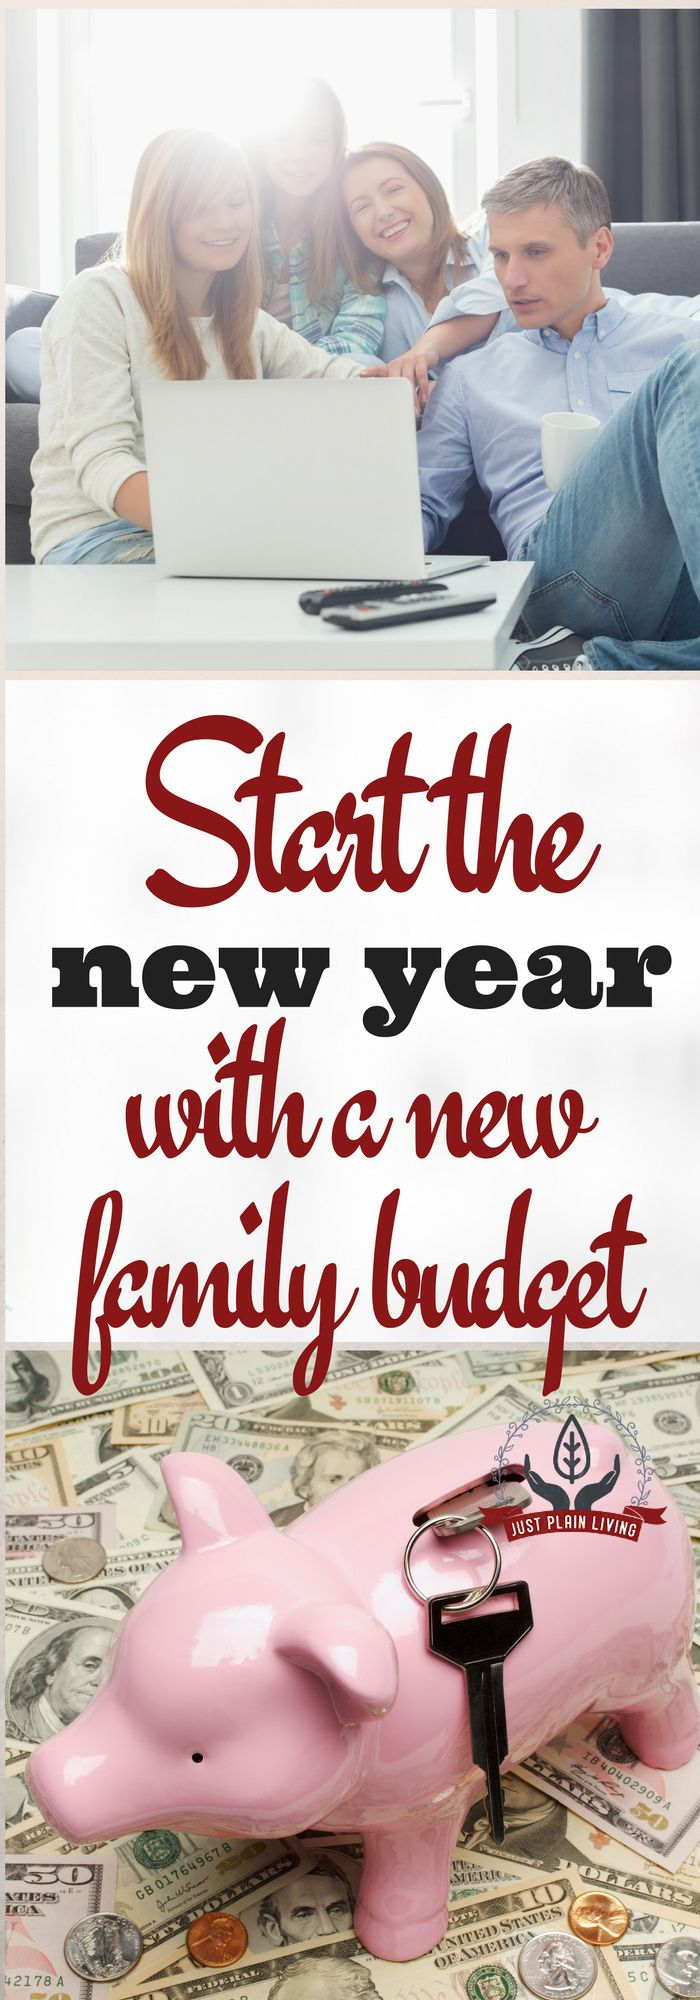 Start the new year with a new family budget - get your finances on track for 2017